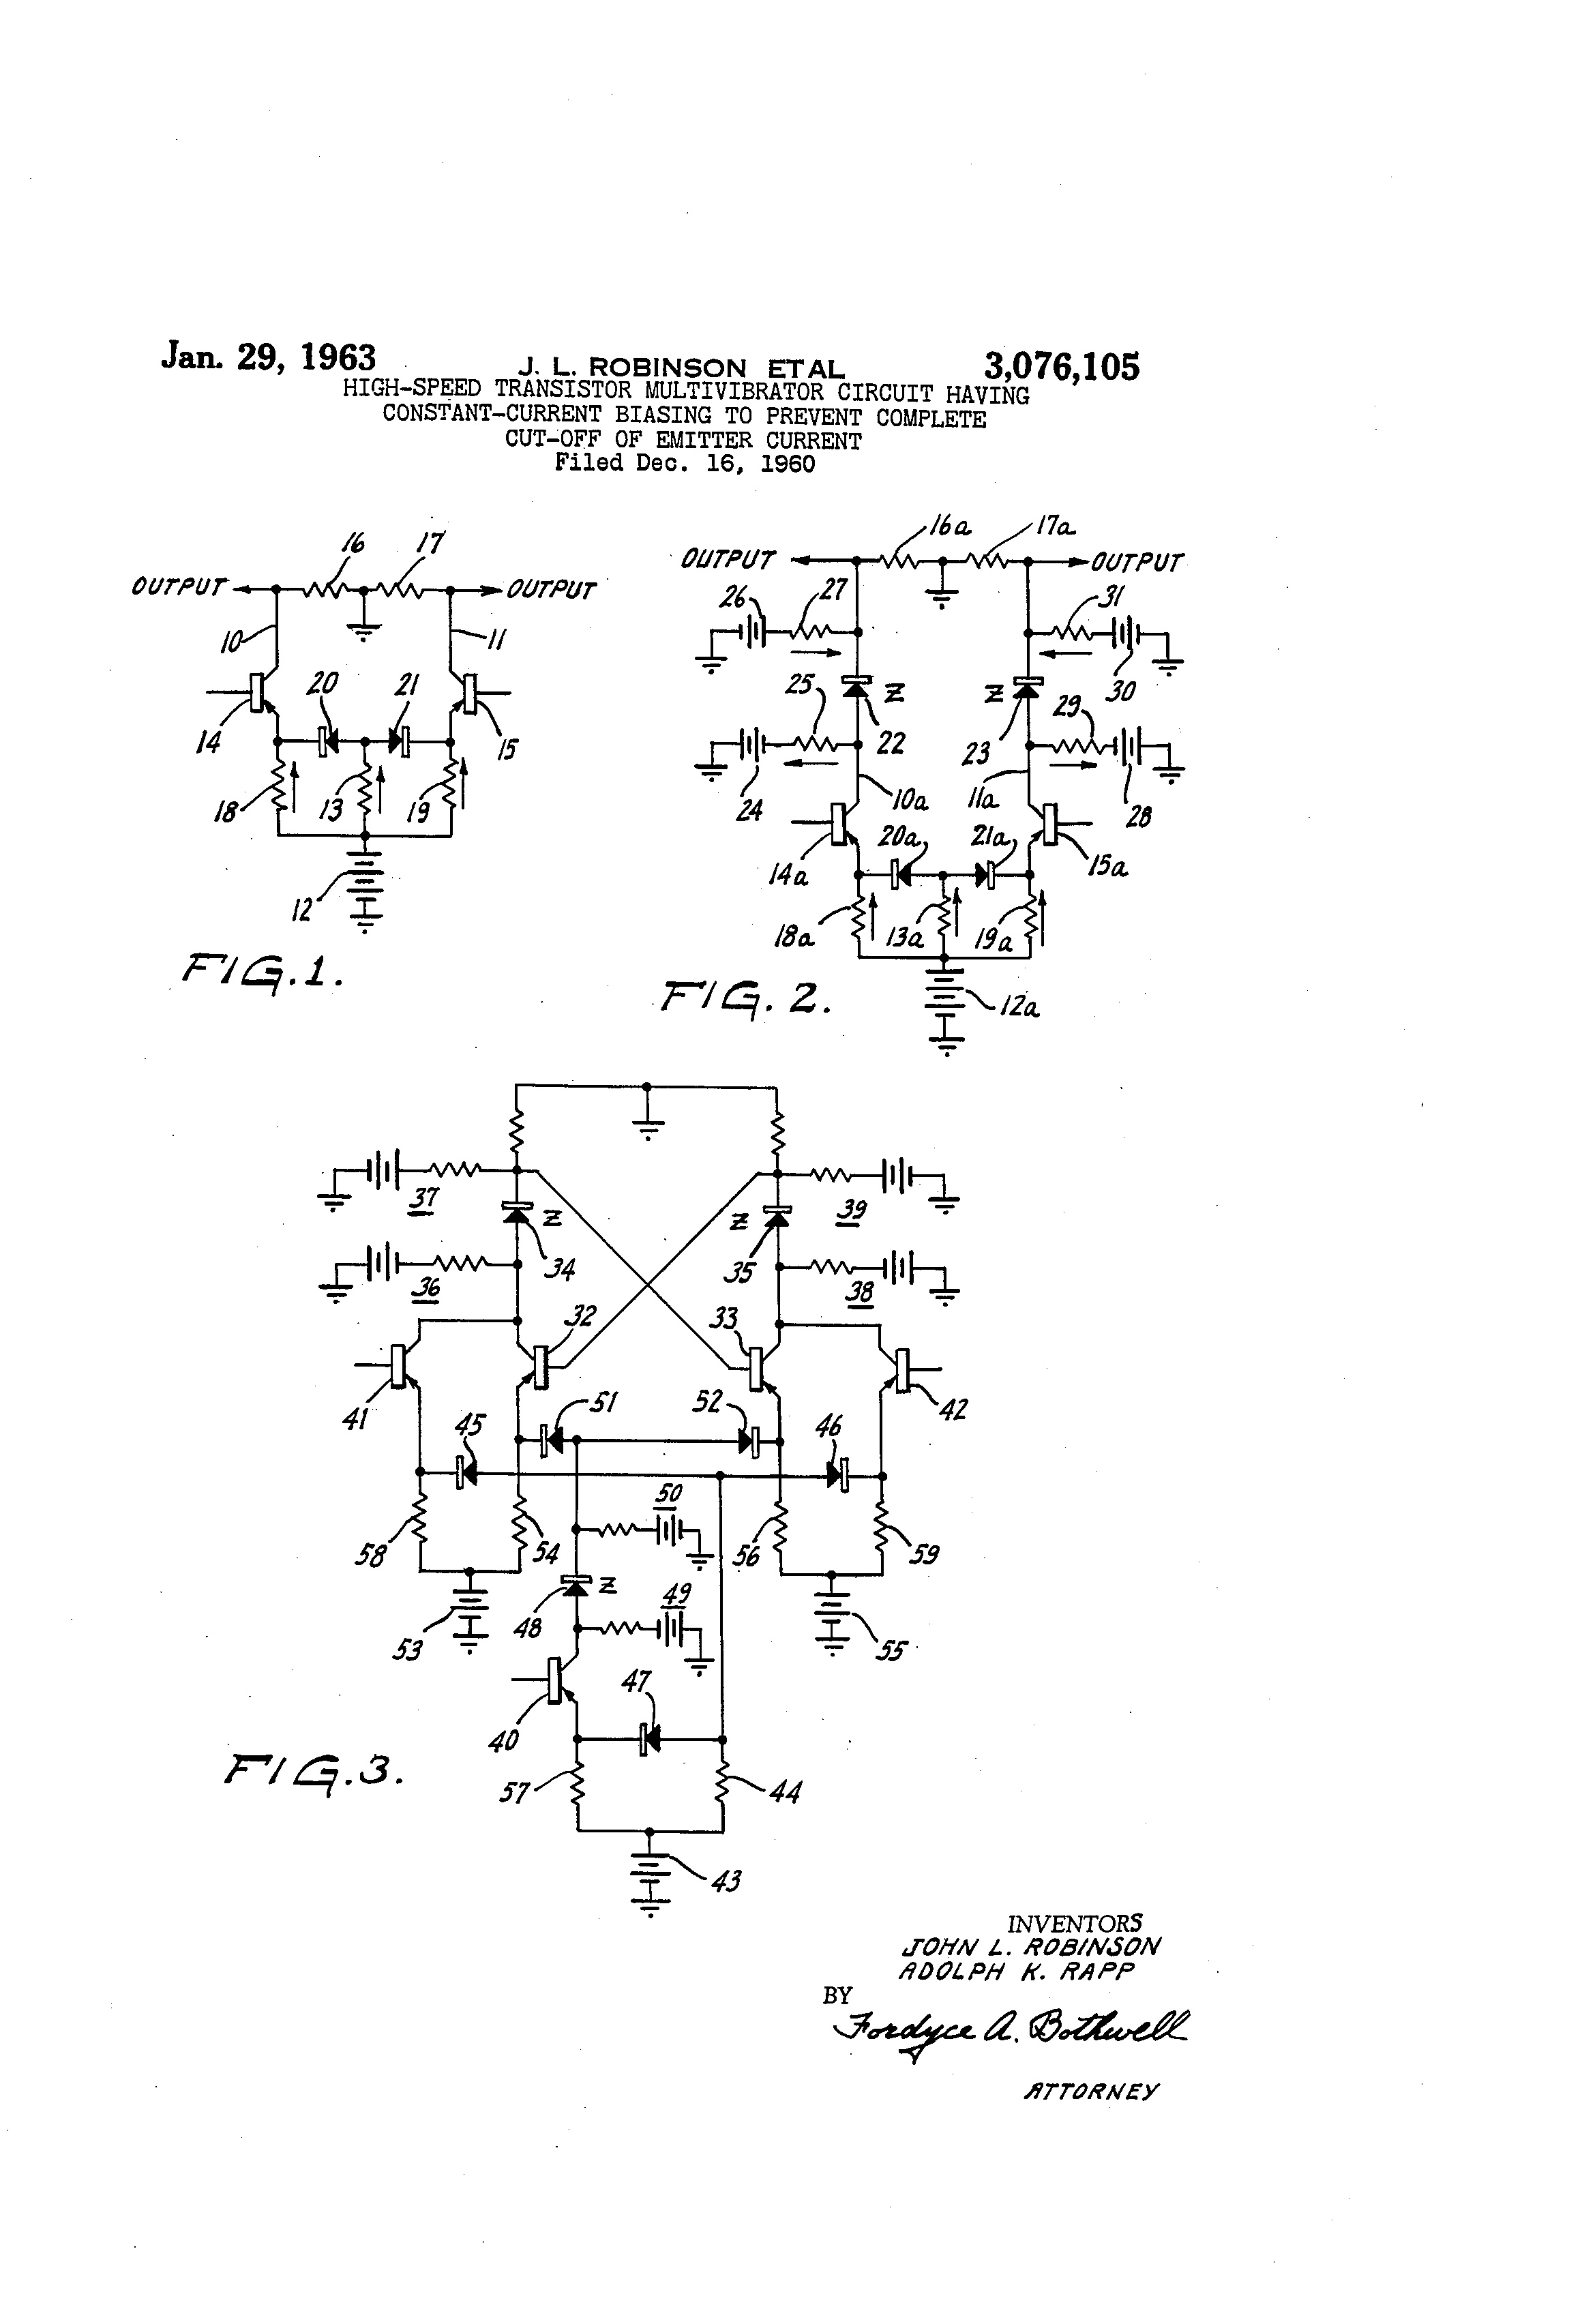 Brevet Us3076105 High Speed Transistor Multivibrator Circuit Constant Current This Can Be Adjusted To Patent Drawing